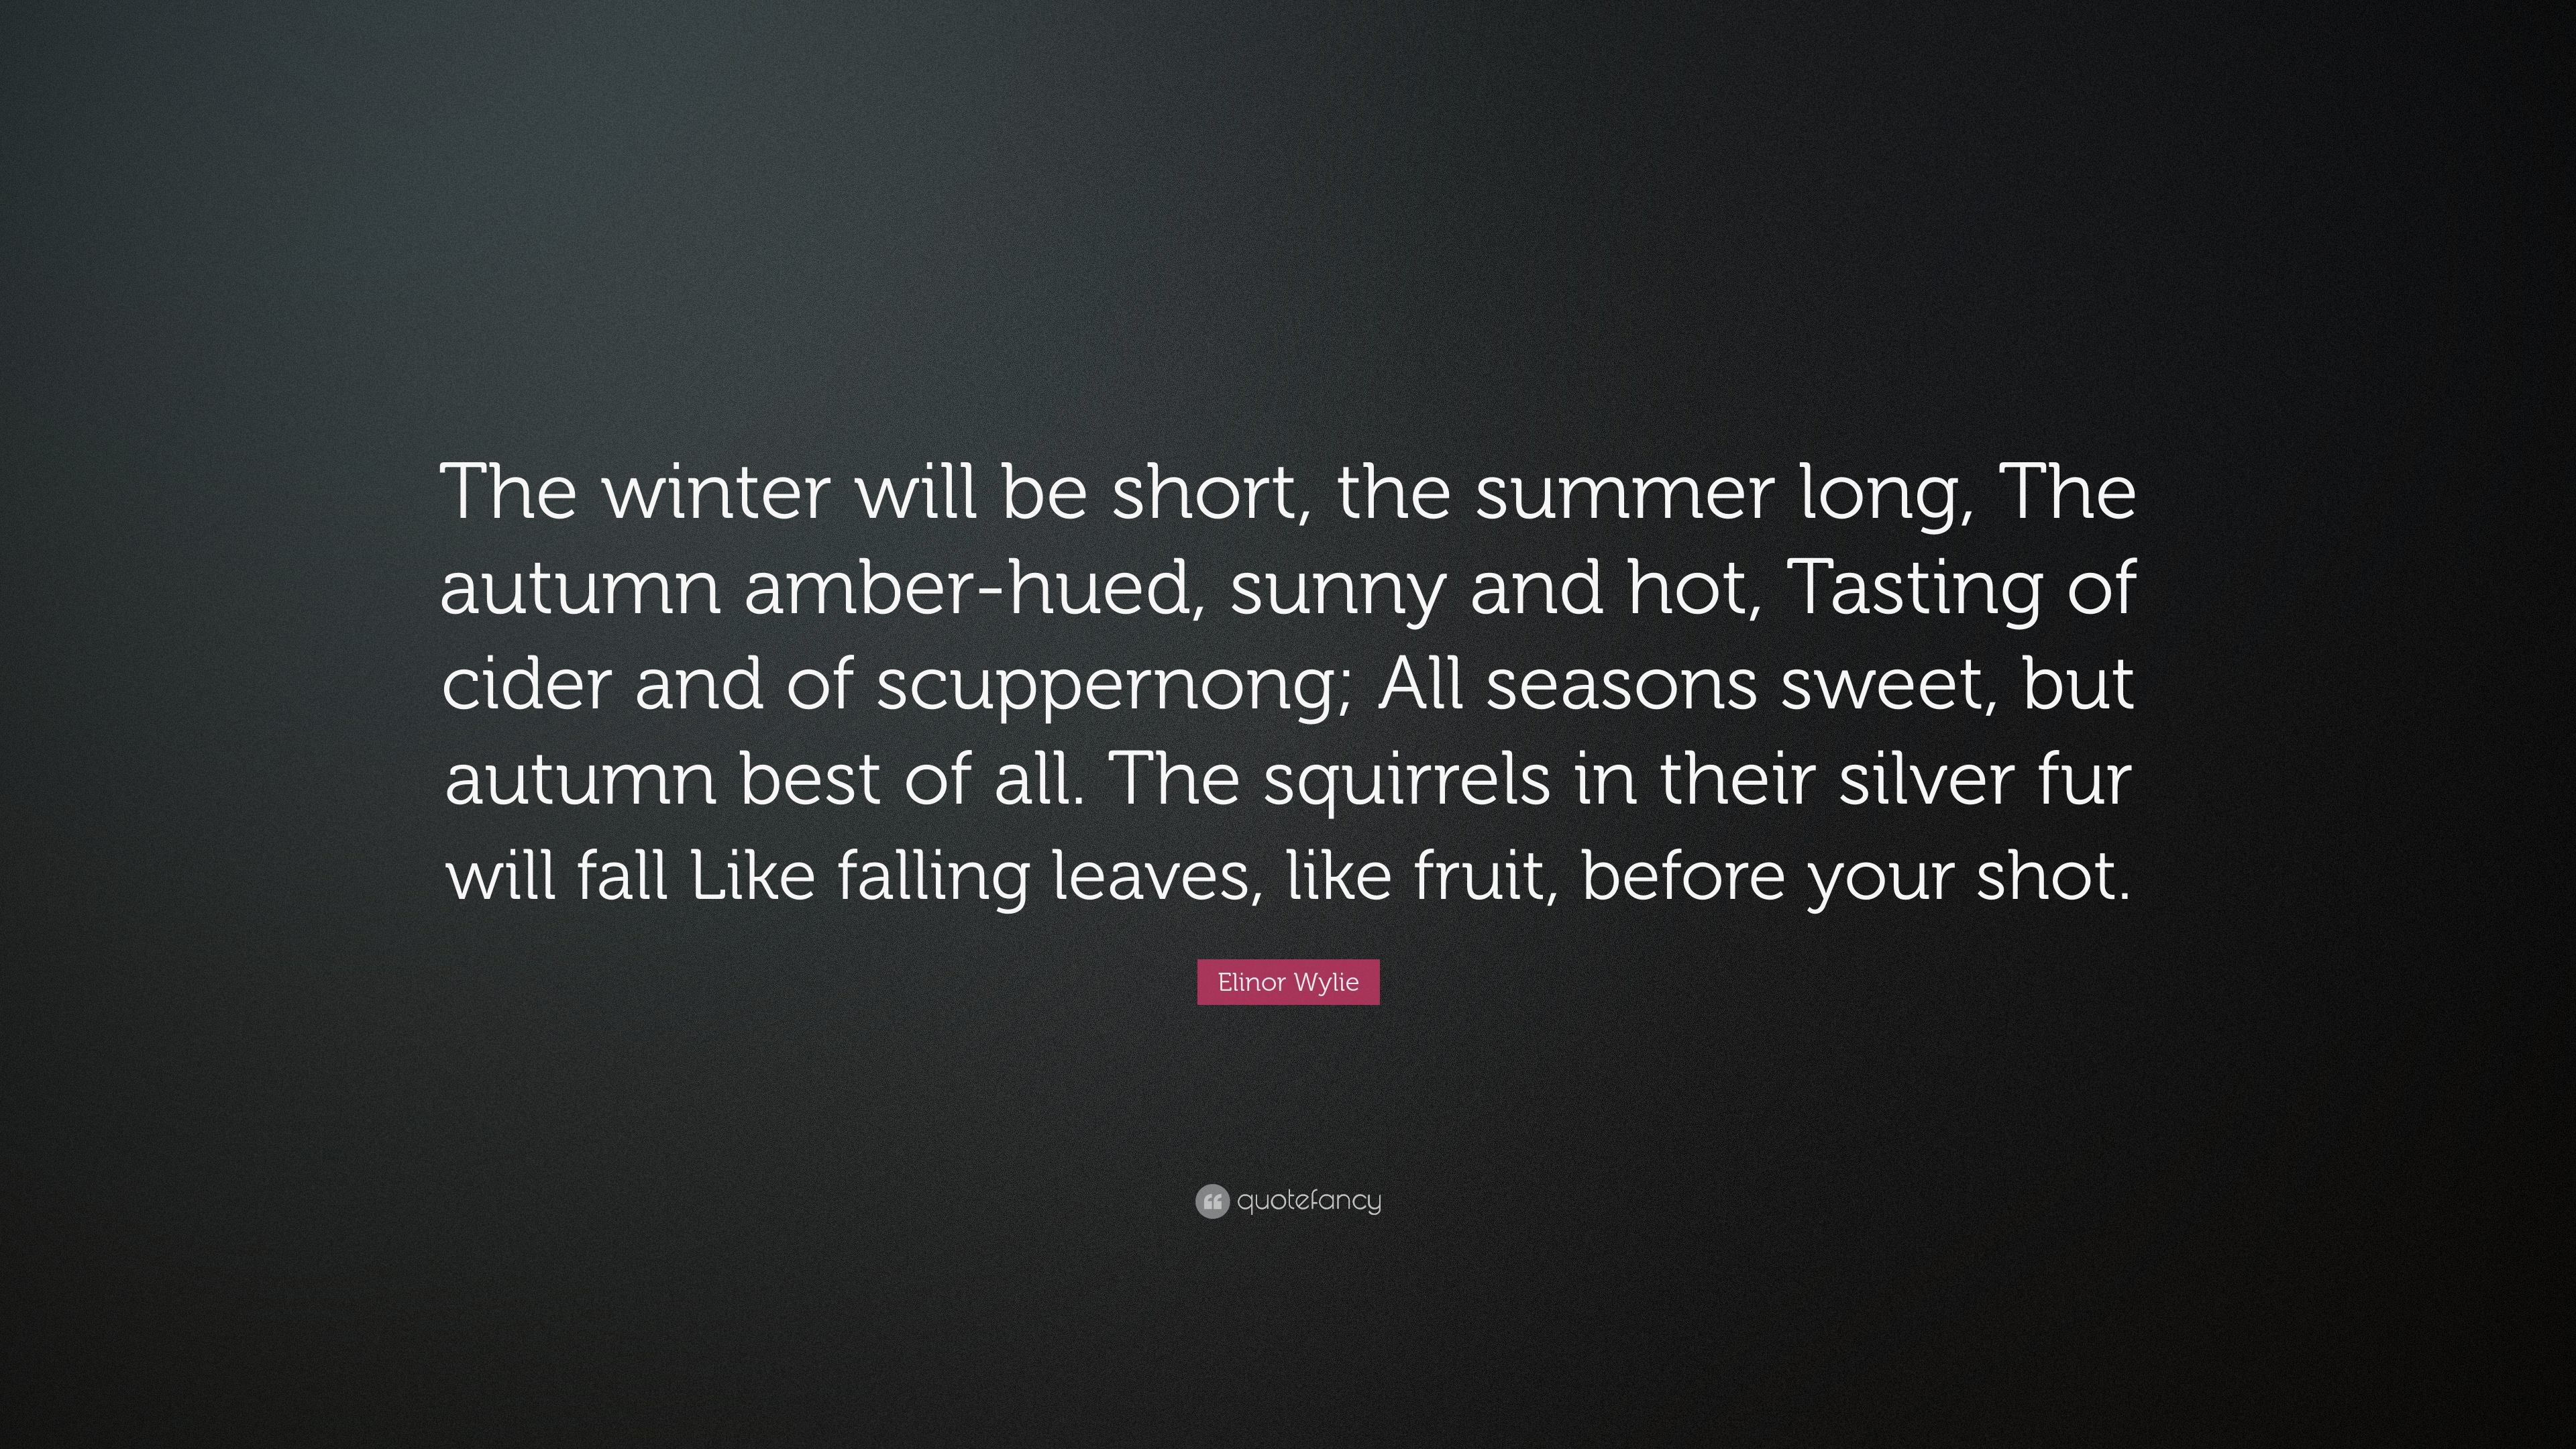 Elinor Wylie Quote: U201cThe Winter Will Be Short, The Summer Long, The